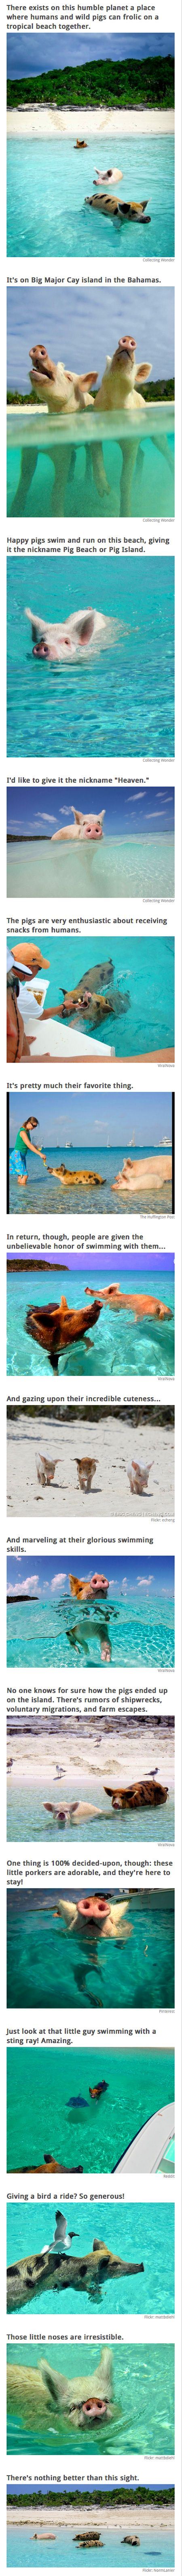 There exists on this humble planet a place where humans and wild pigs can frolic on a tropical beach together. It's on Big Major Cay island in the Bahamas. I want to go!!!